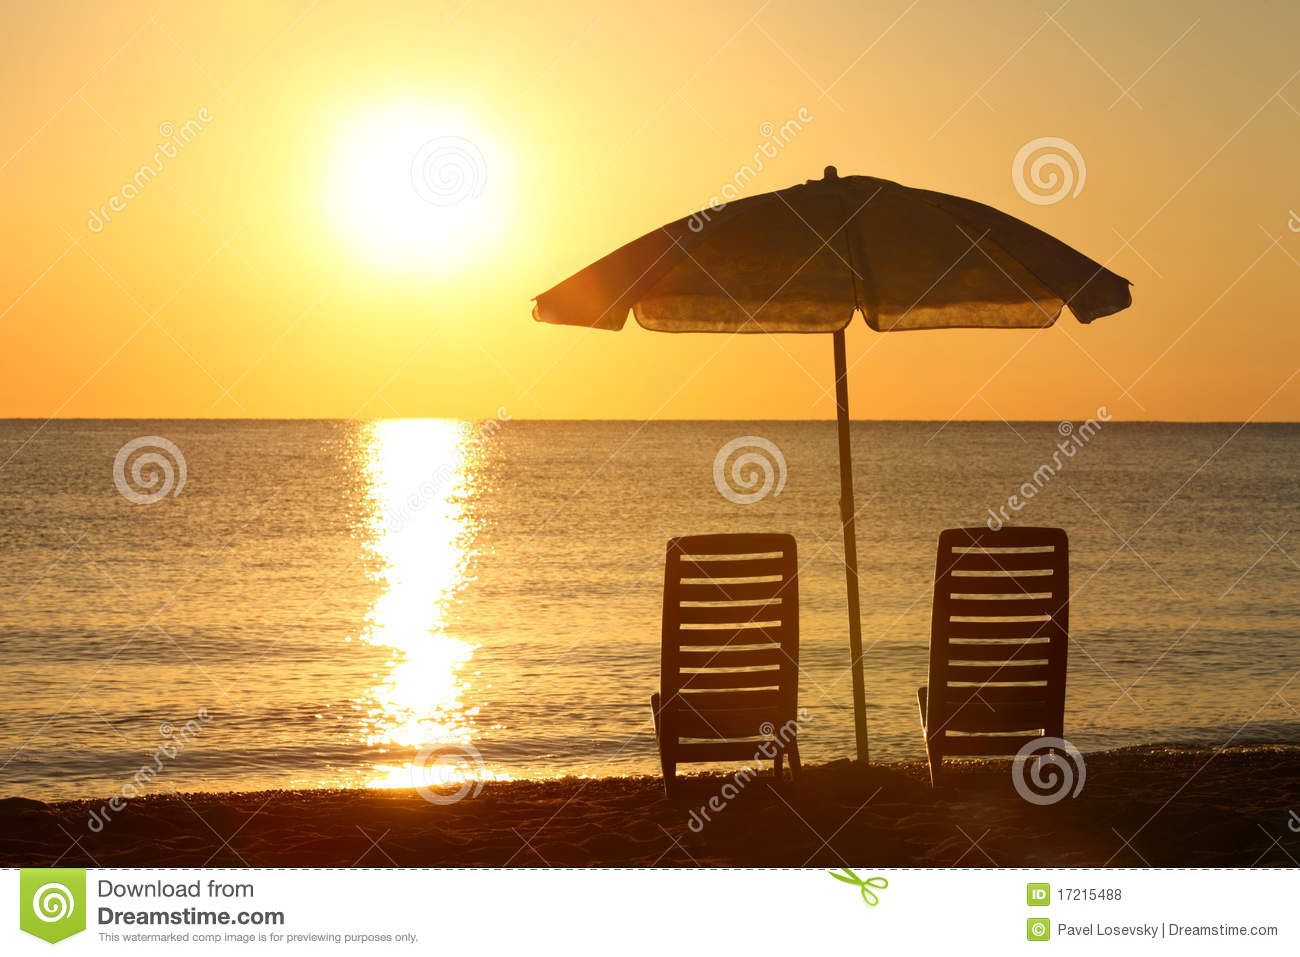 Chairs stand on beach under opened umbrella